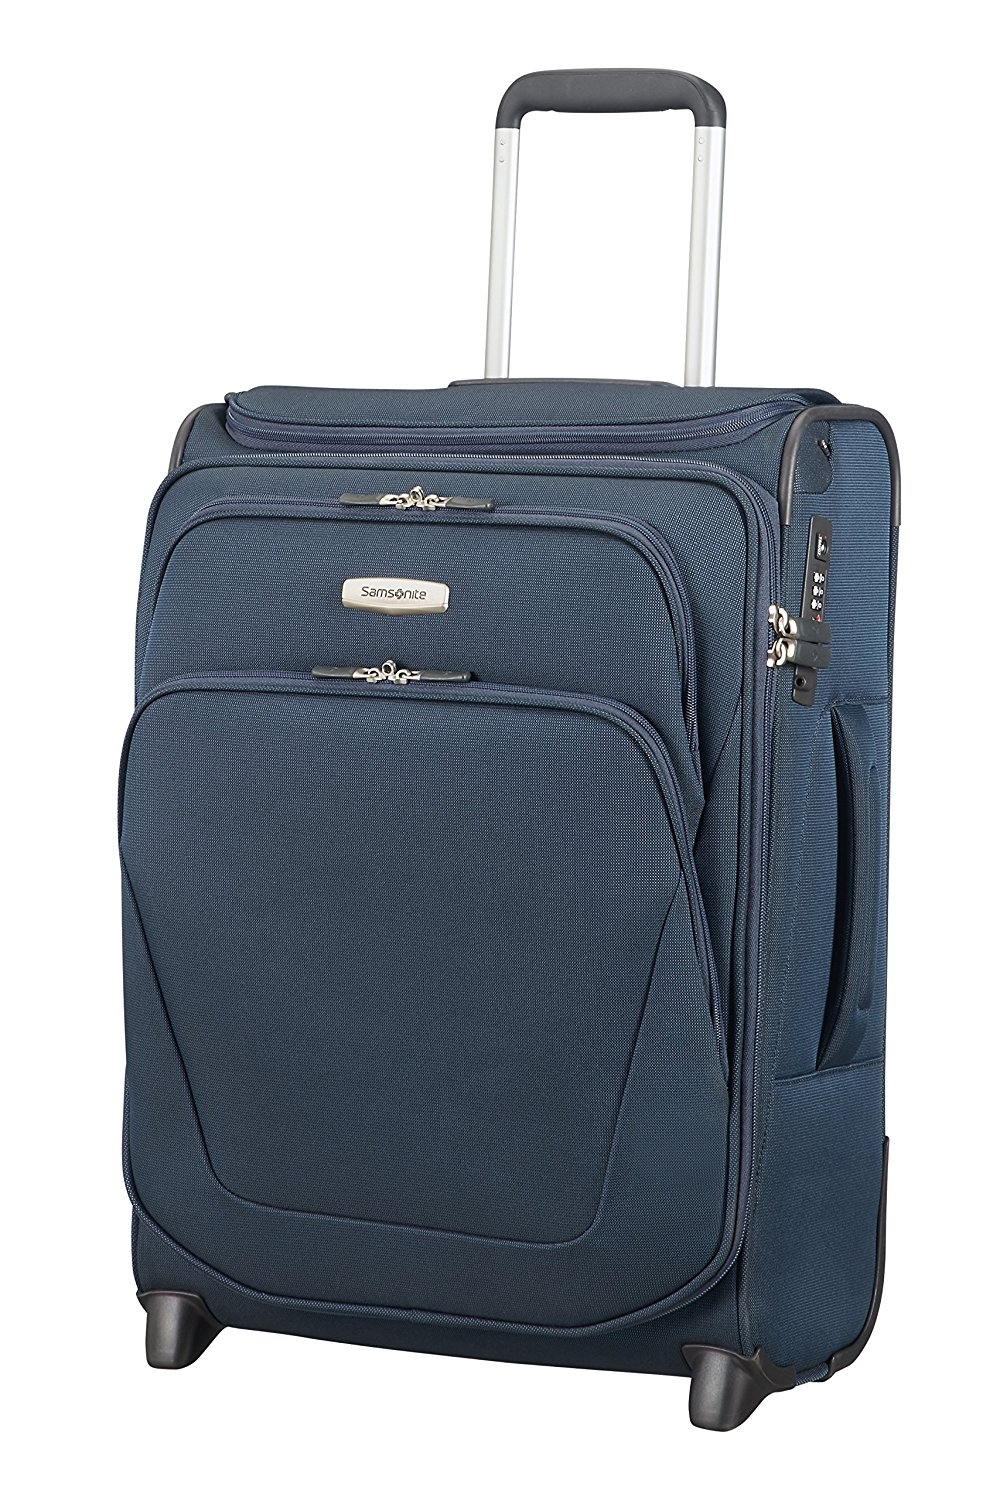 SAMSONITE Spark SNG - Upright 55/20 Expendable with SmartTop Bagage cabine, 55 cm, 48,5 liters, Blau